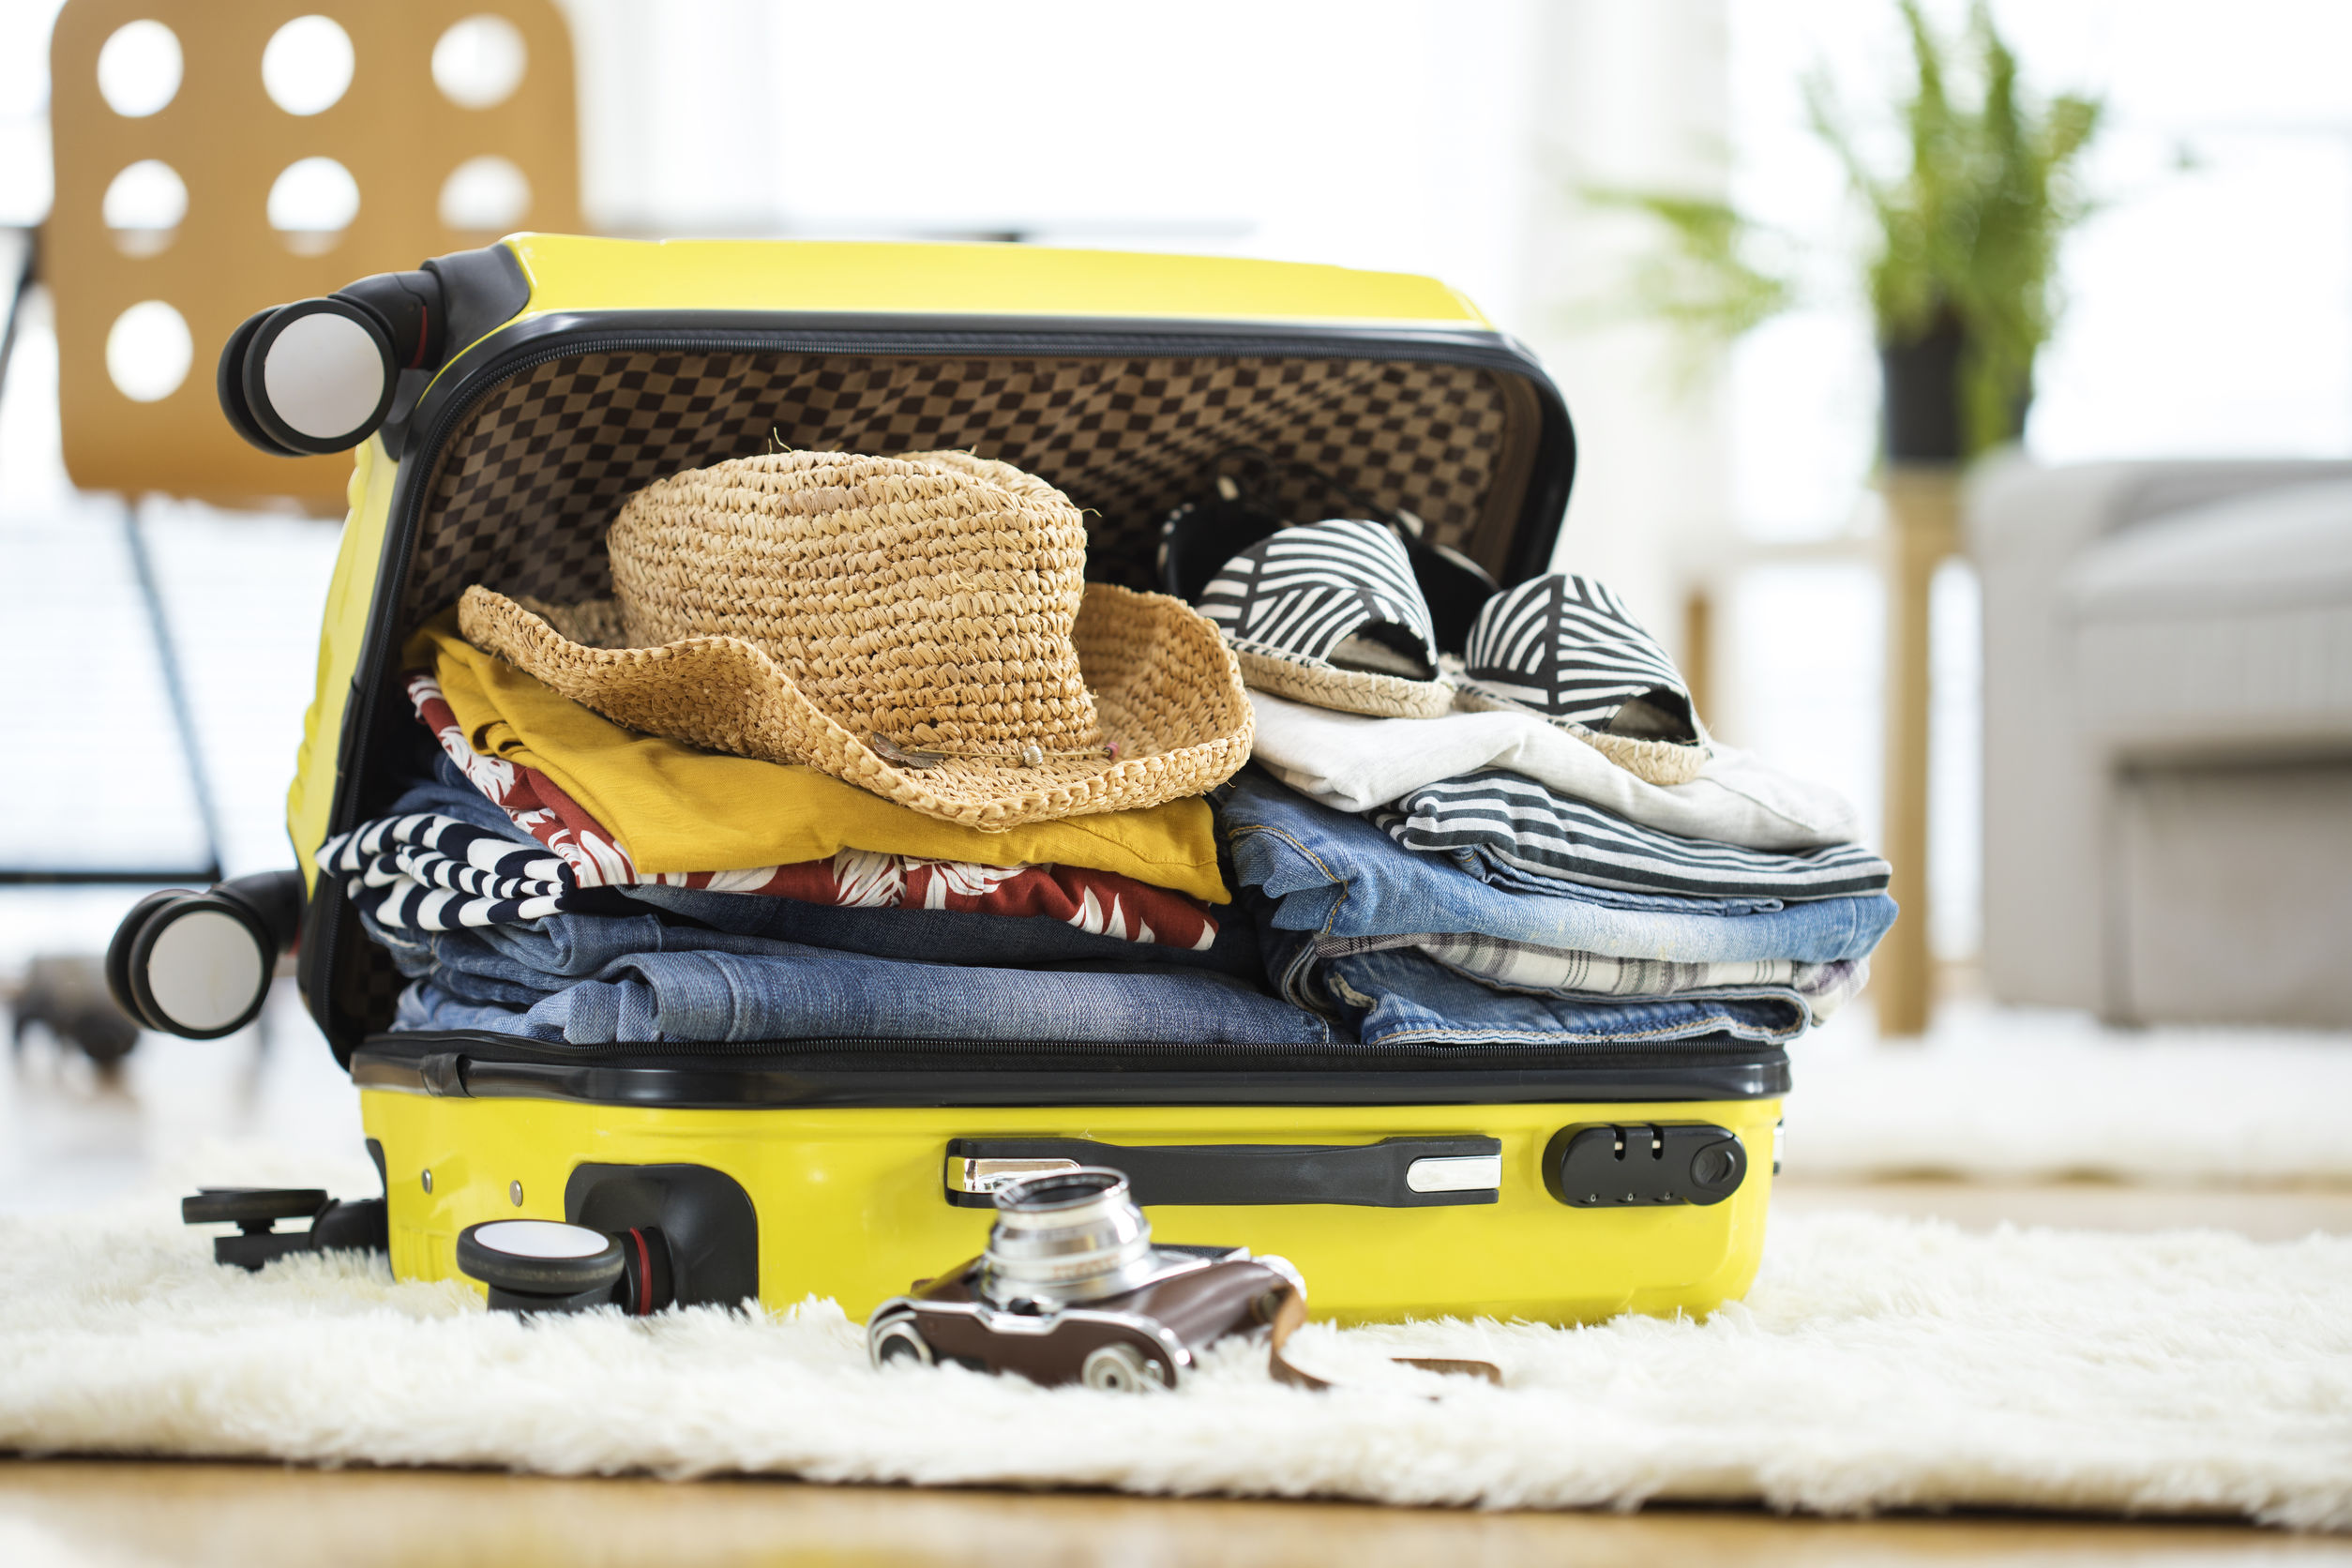 74513355 - preparation travel suitcase at home